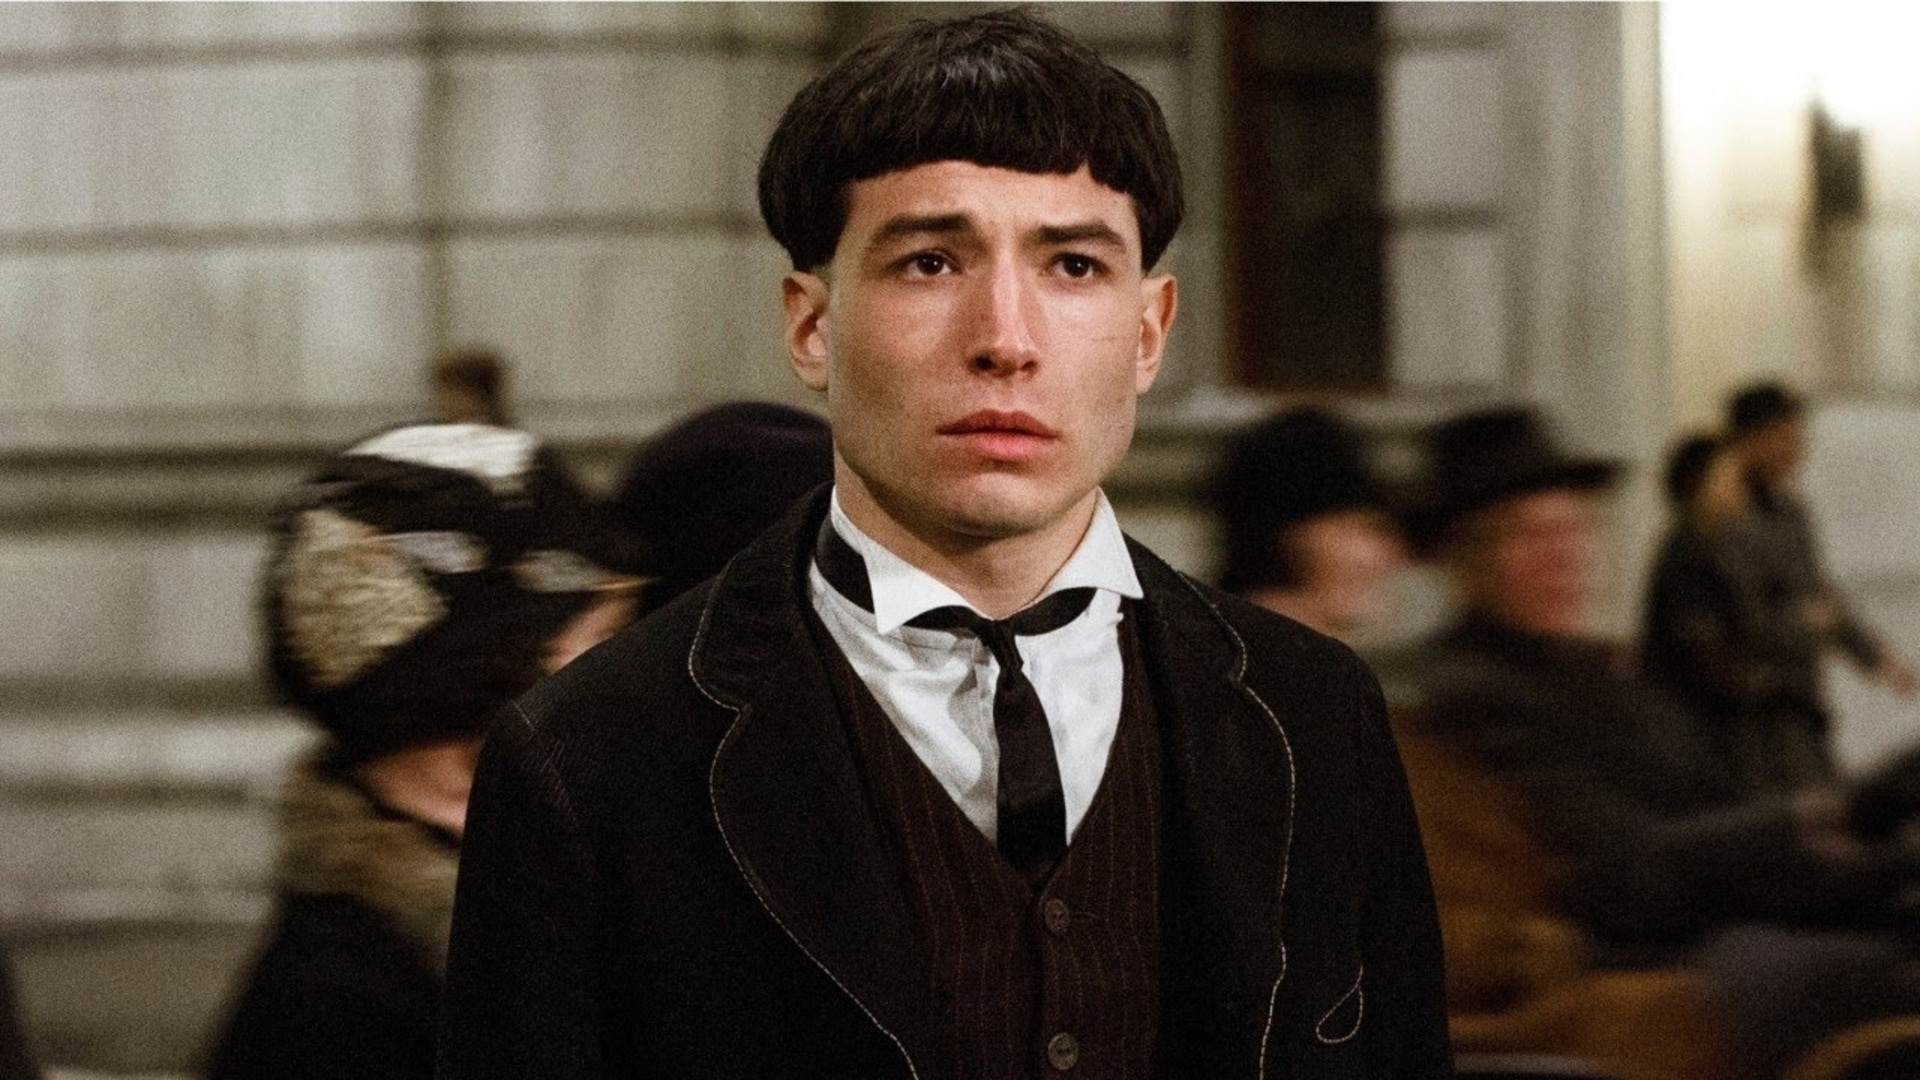 He is known for his popular role in Fantastic Beasts